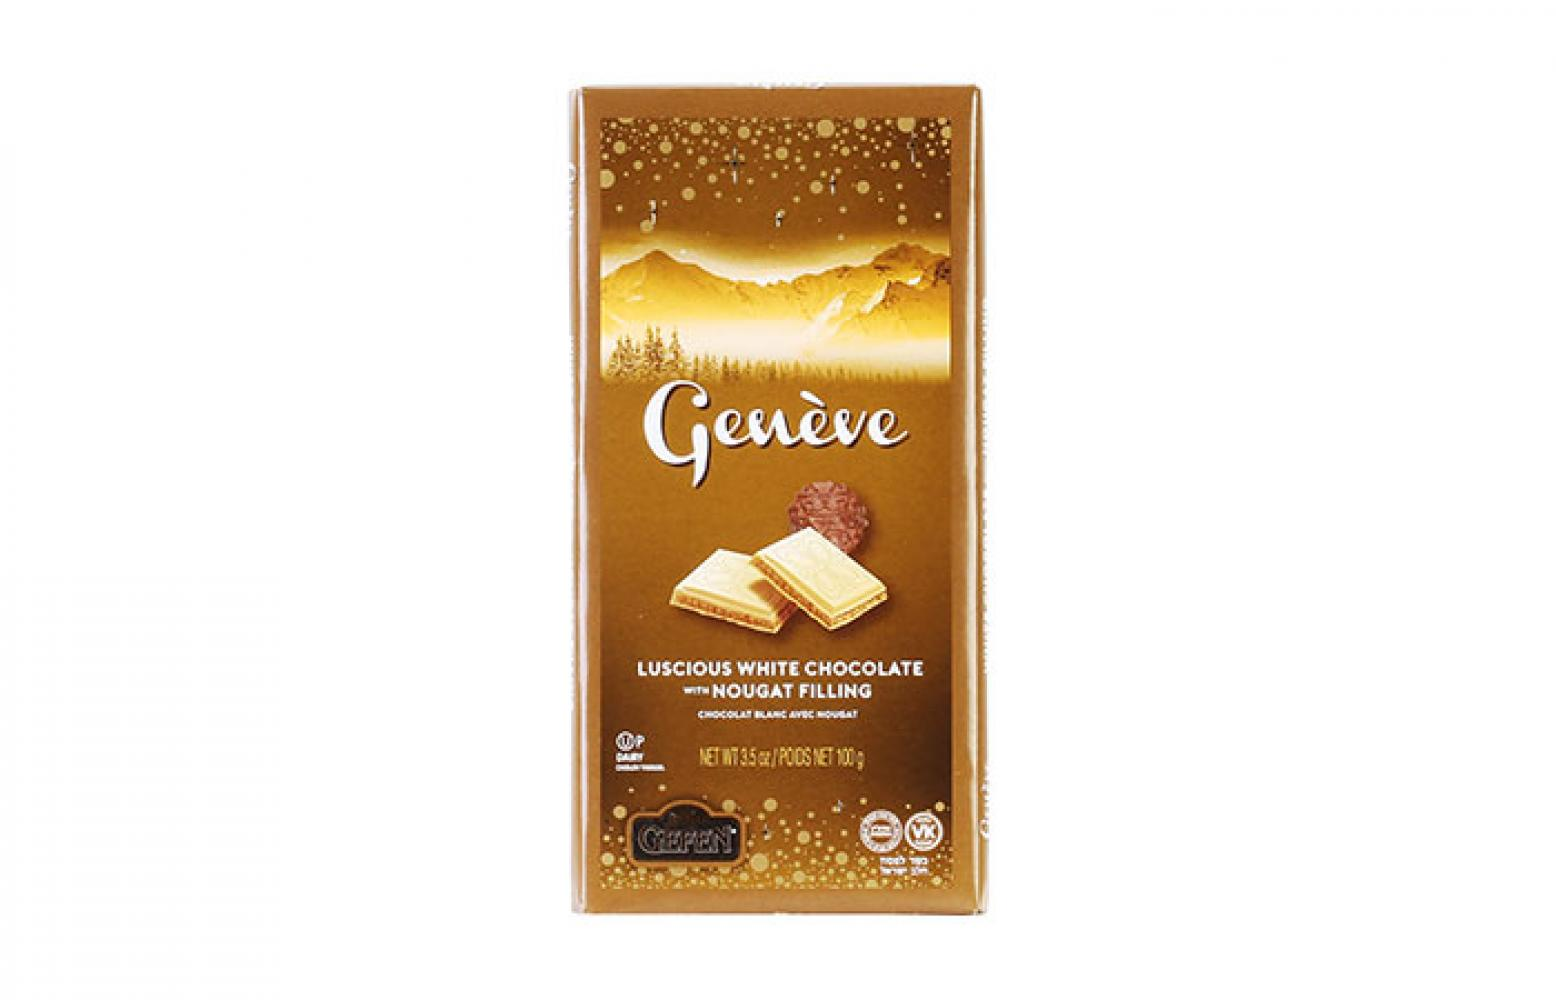 Geneve white chocolate with nougat filling 3.5 oz